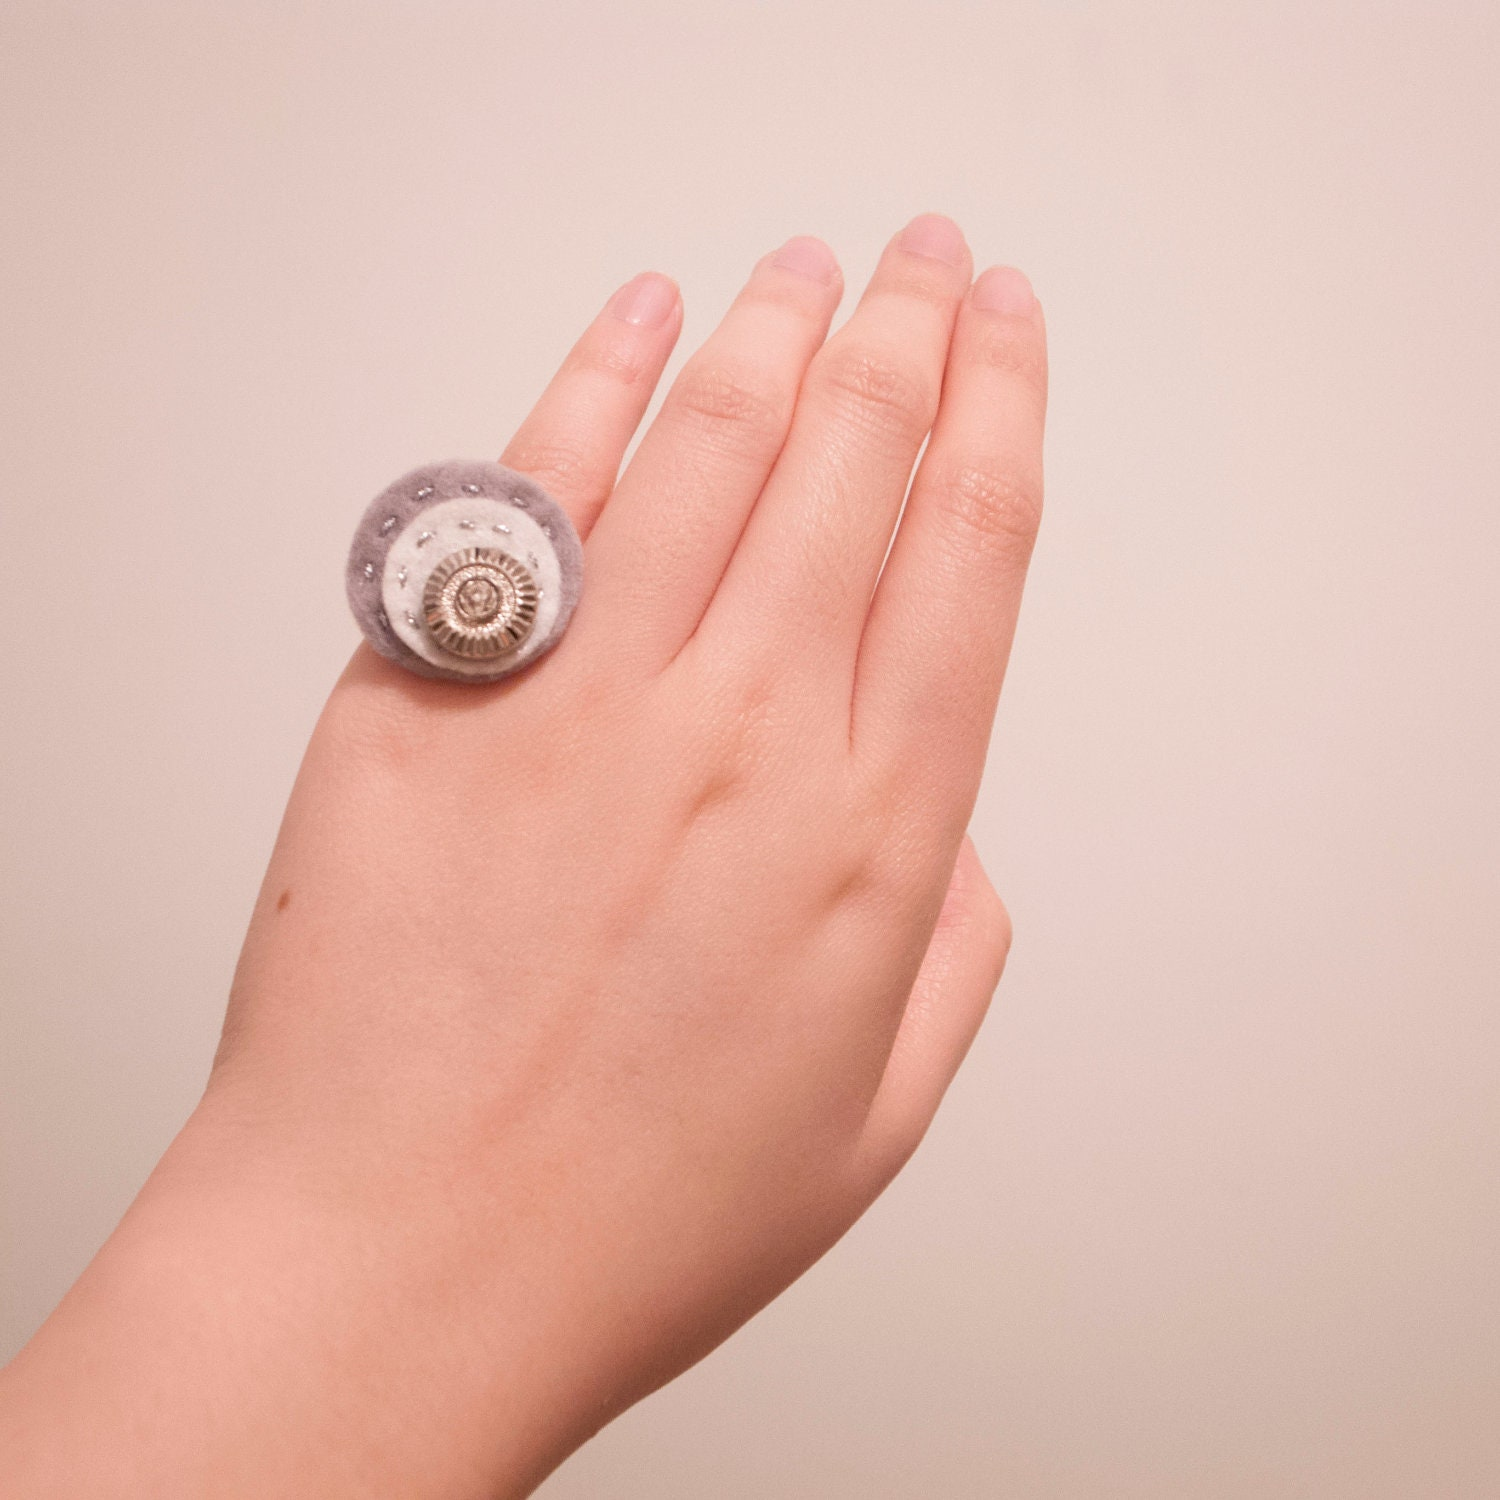 Gray Felt Vintage Button Ring Stitched with Silver Thread, Adjustable Ring, Small Finger Ring, Xmas Gift, Christmas Gift